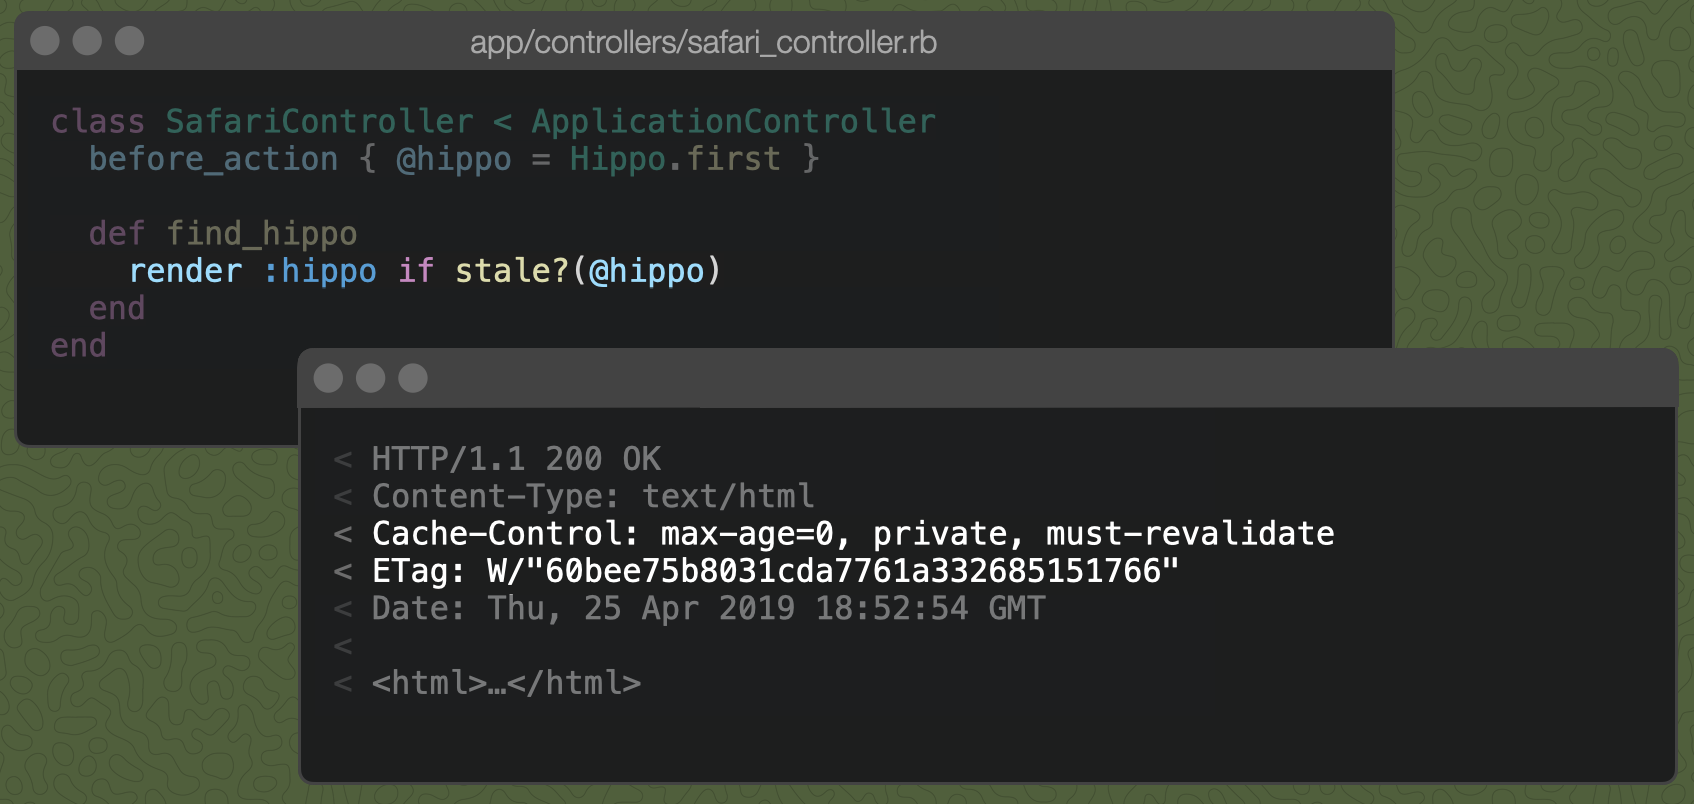 A Rails controller action with render :hippo if stale?(@hippo) and the resulting Cache-Control header, described below.